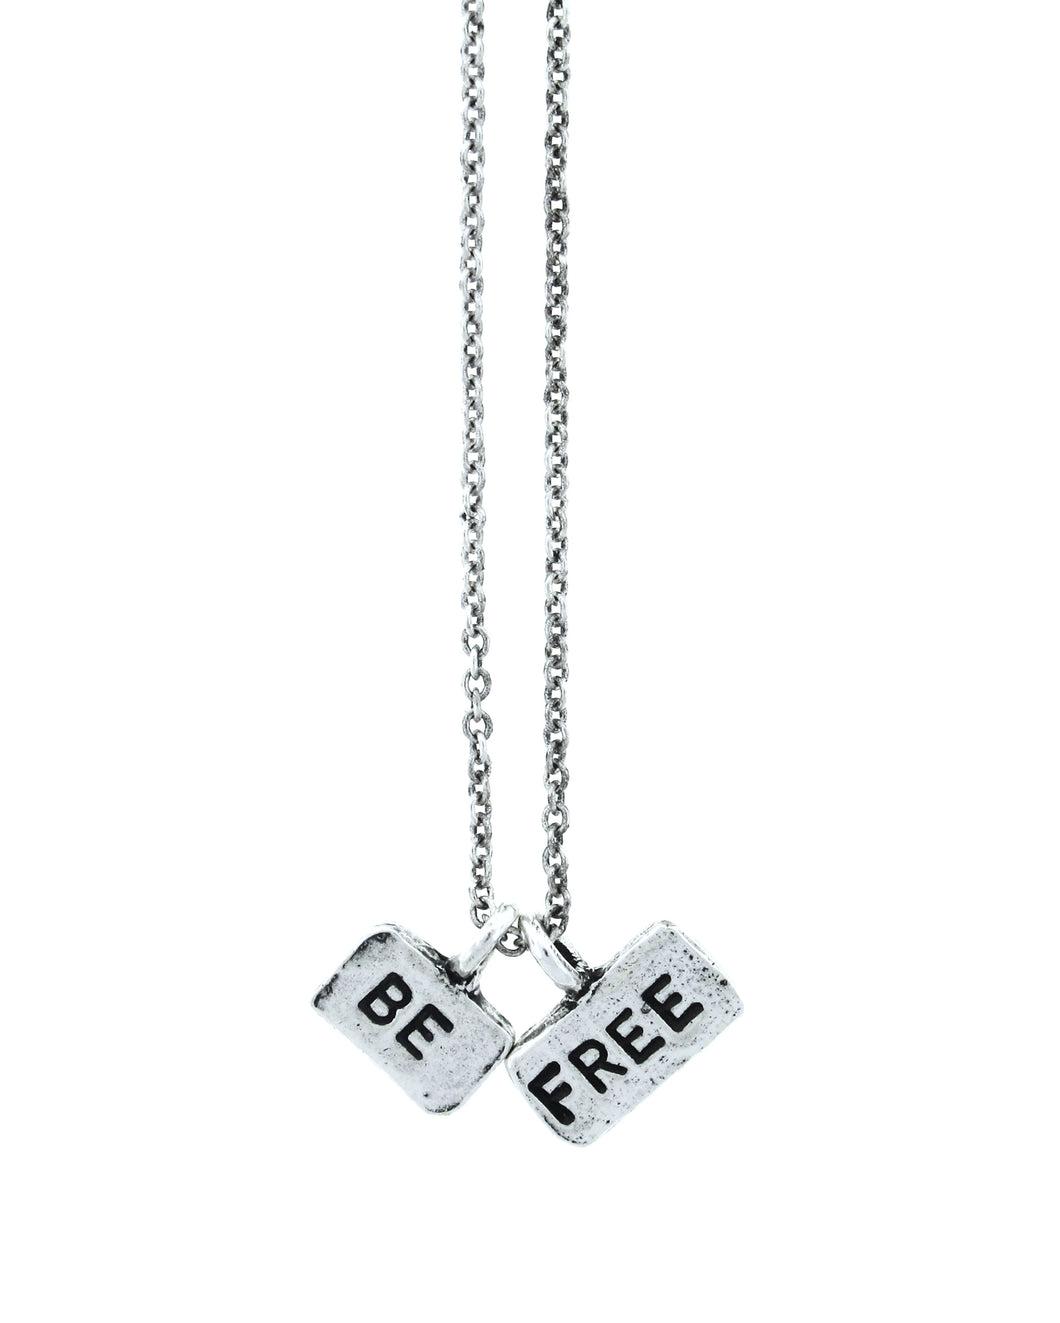 BE FREE NECKLACE